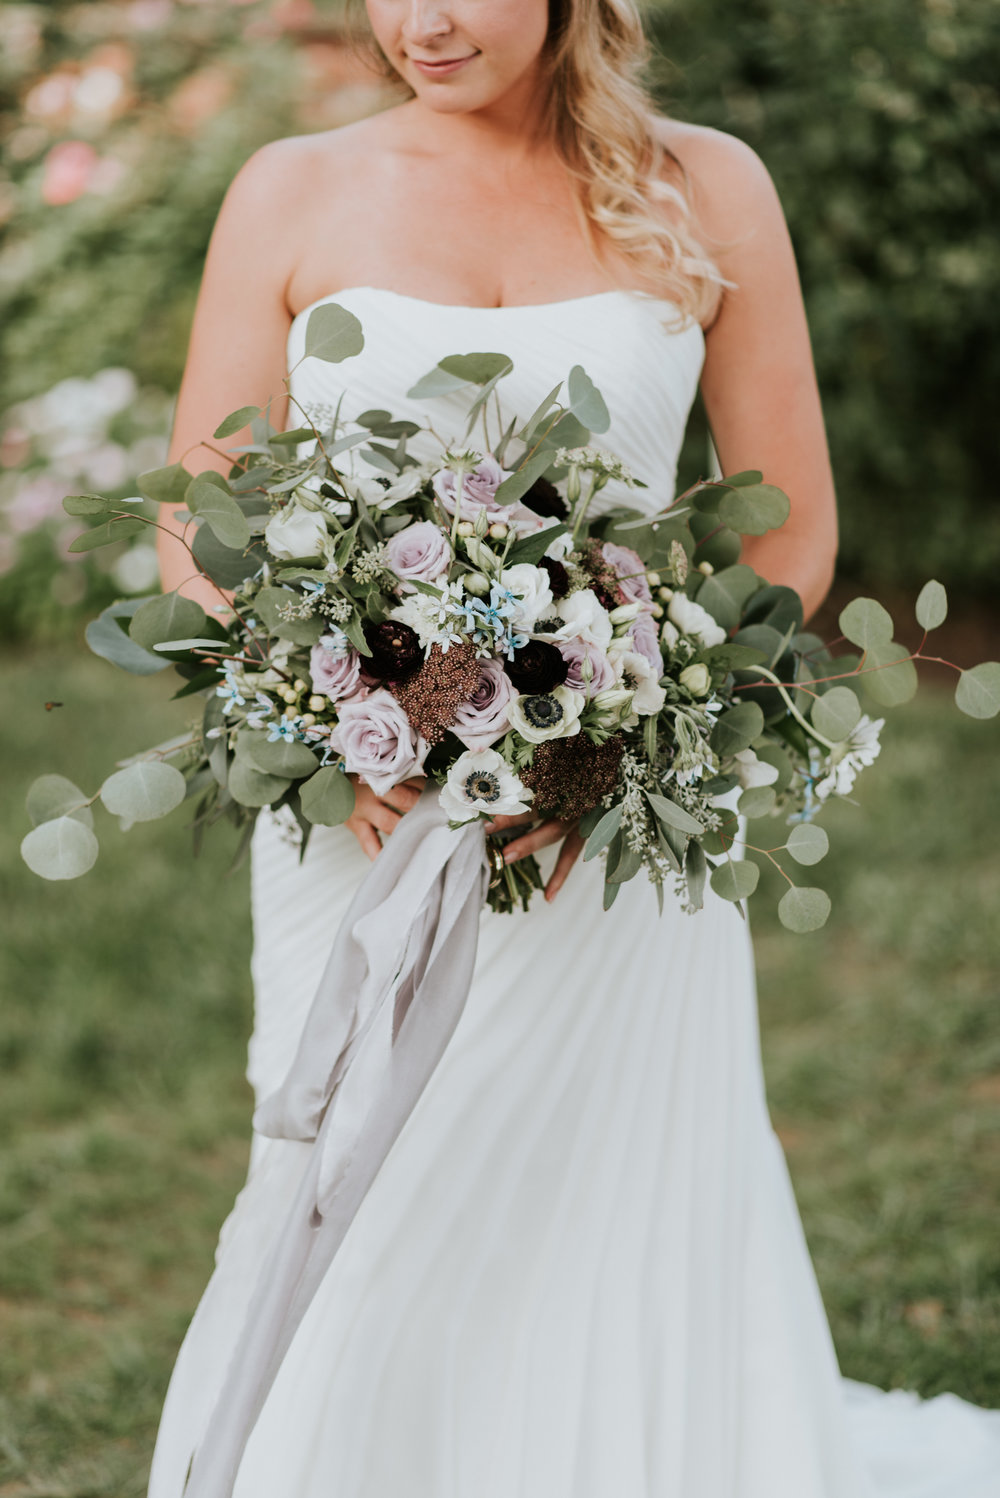 Rustic Oyster Themed Eastern Shore Maryland Outdoor Wedding by East Made Event Company Wedding Planner and Bekah Kay Creative177.jpg